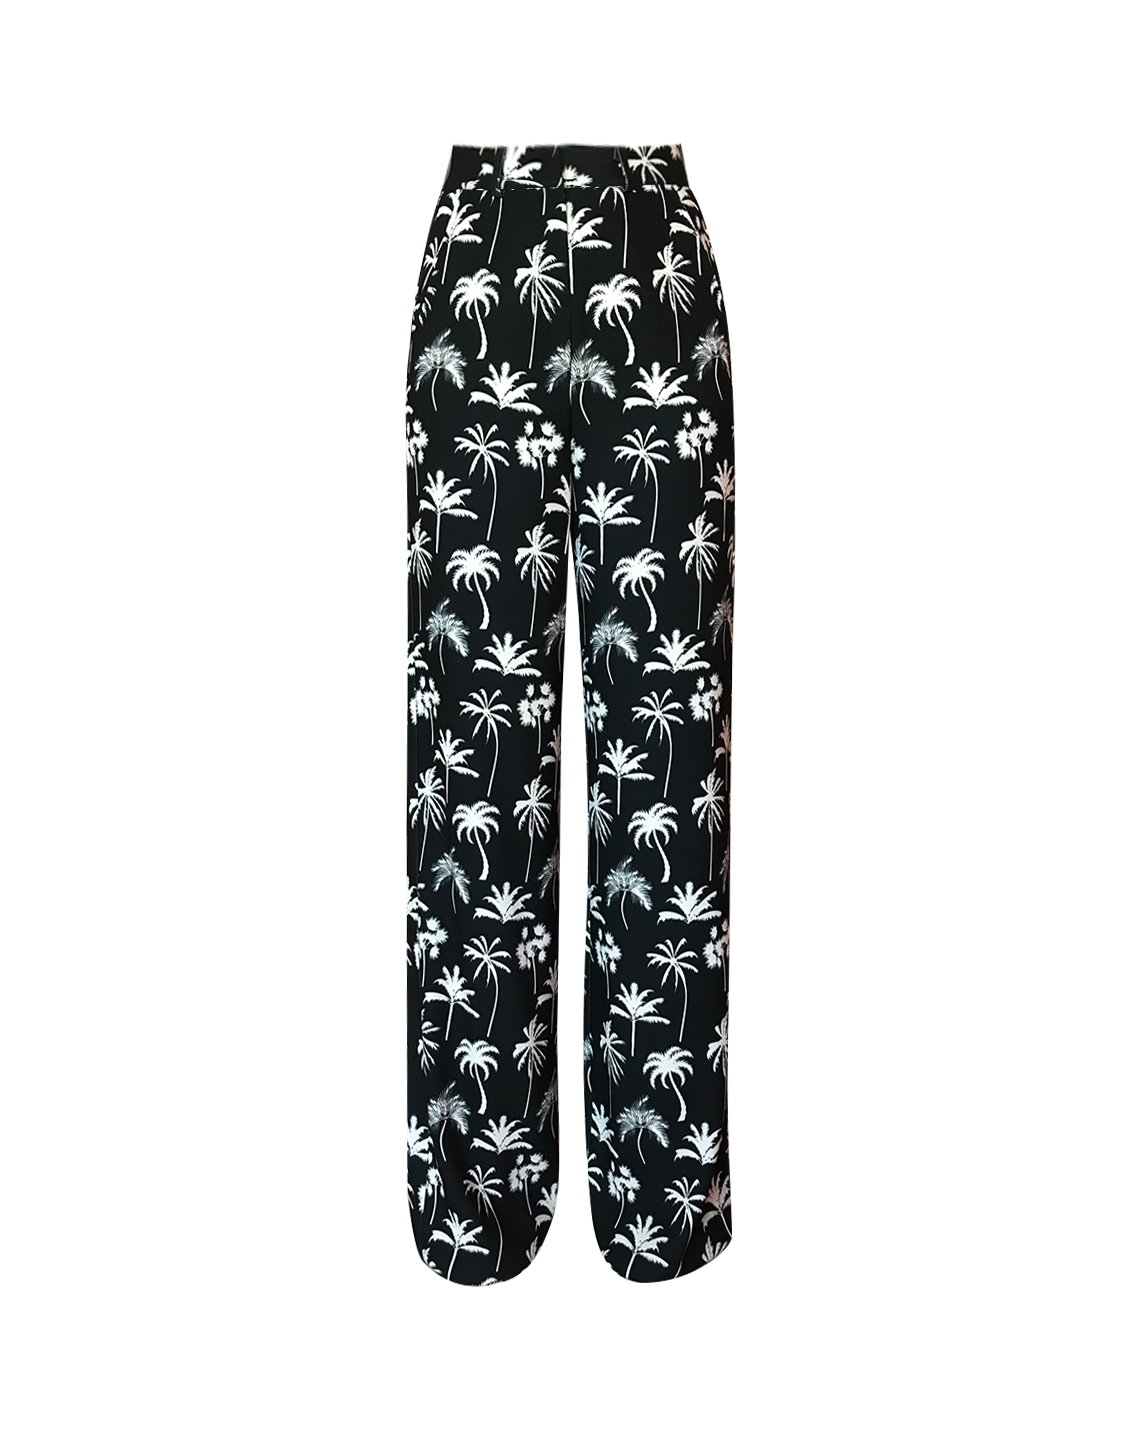 Caspien Pants - Palm Print by Jessica K on curated-crowd.com